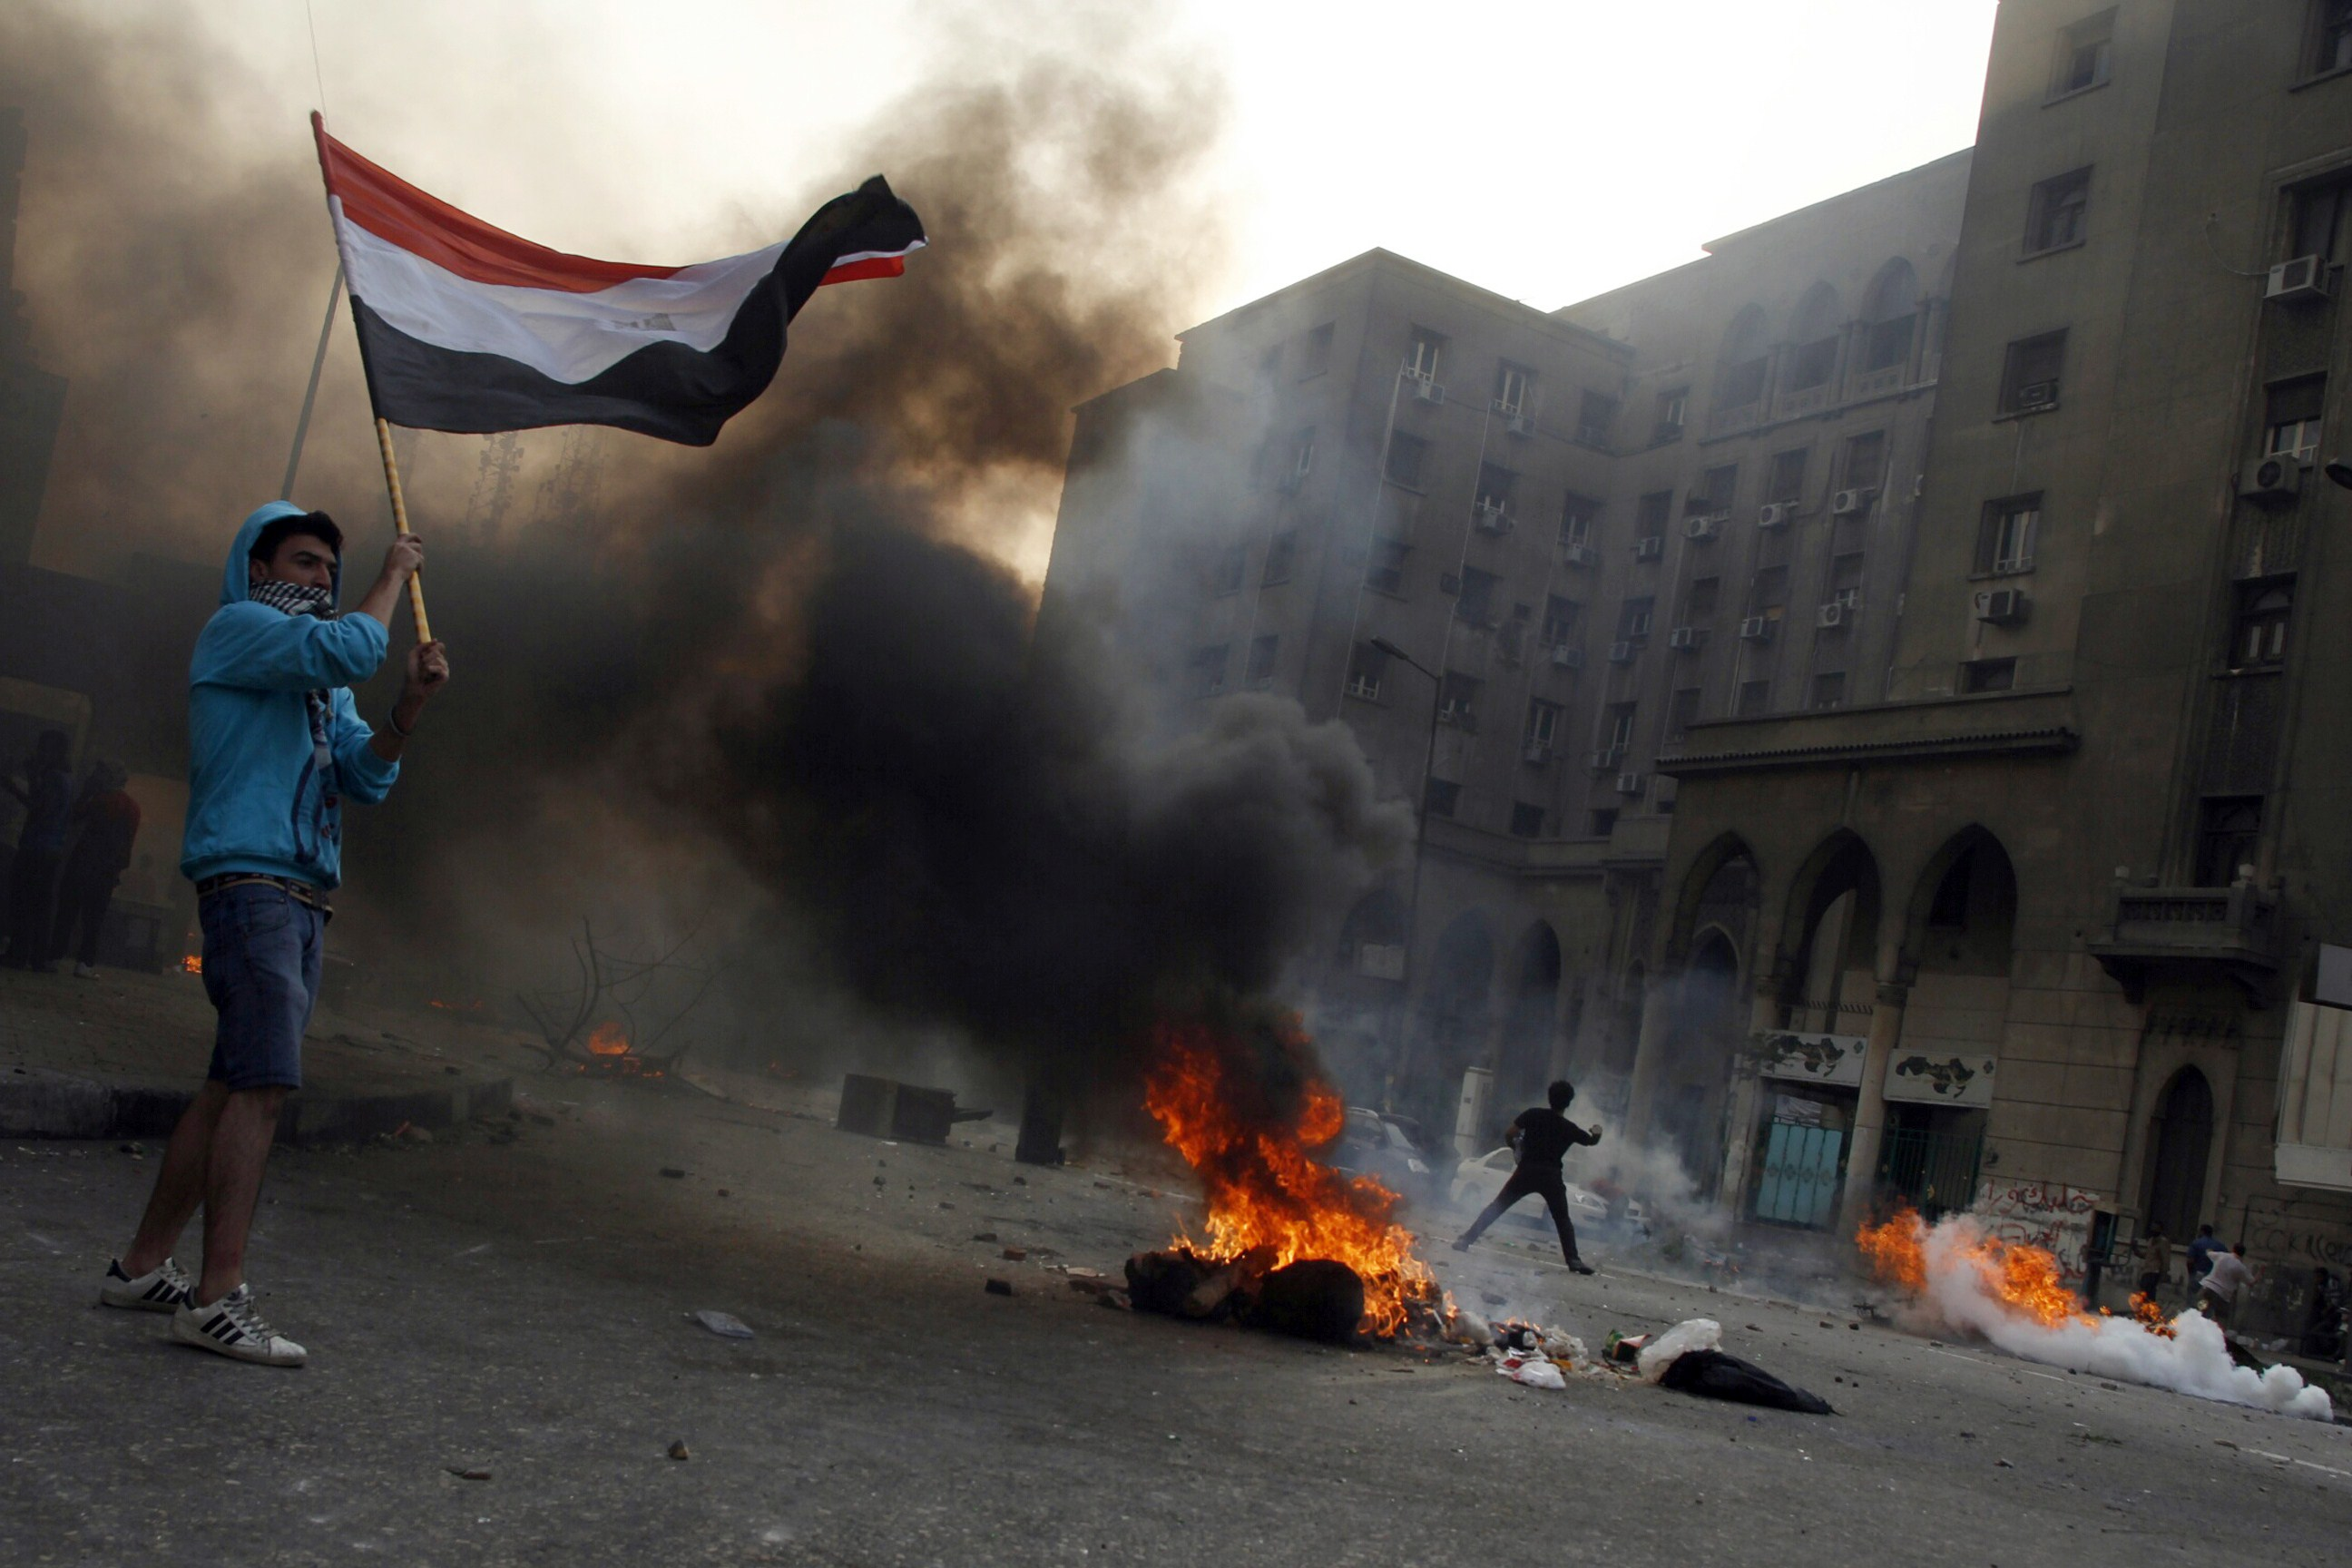 Tires burn as Egyptian Muslim brotherhood and supporters of ousted president Mohamed Morsi take part in clashes with riot police along Ramsis street in downtown Cairo, on October 6, 2013. (AFP PHOTO / MOHAMMED ABDEL MONEIM)